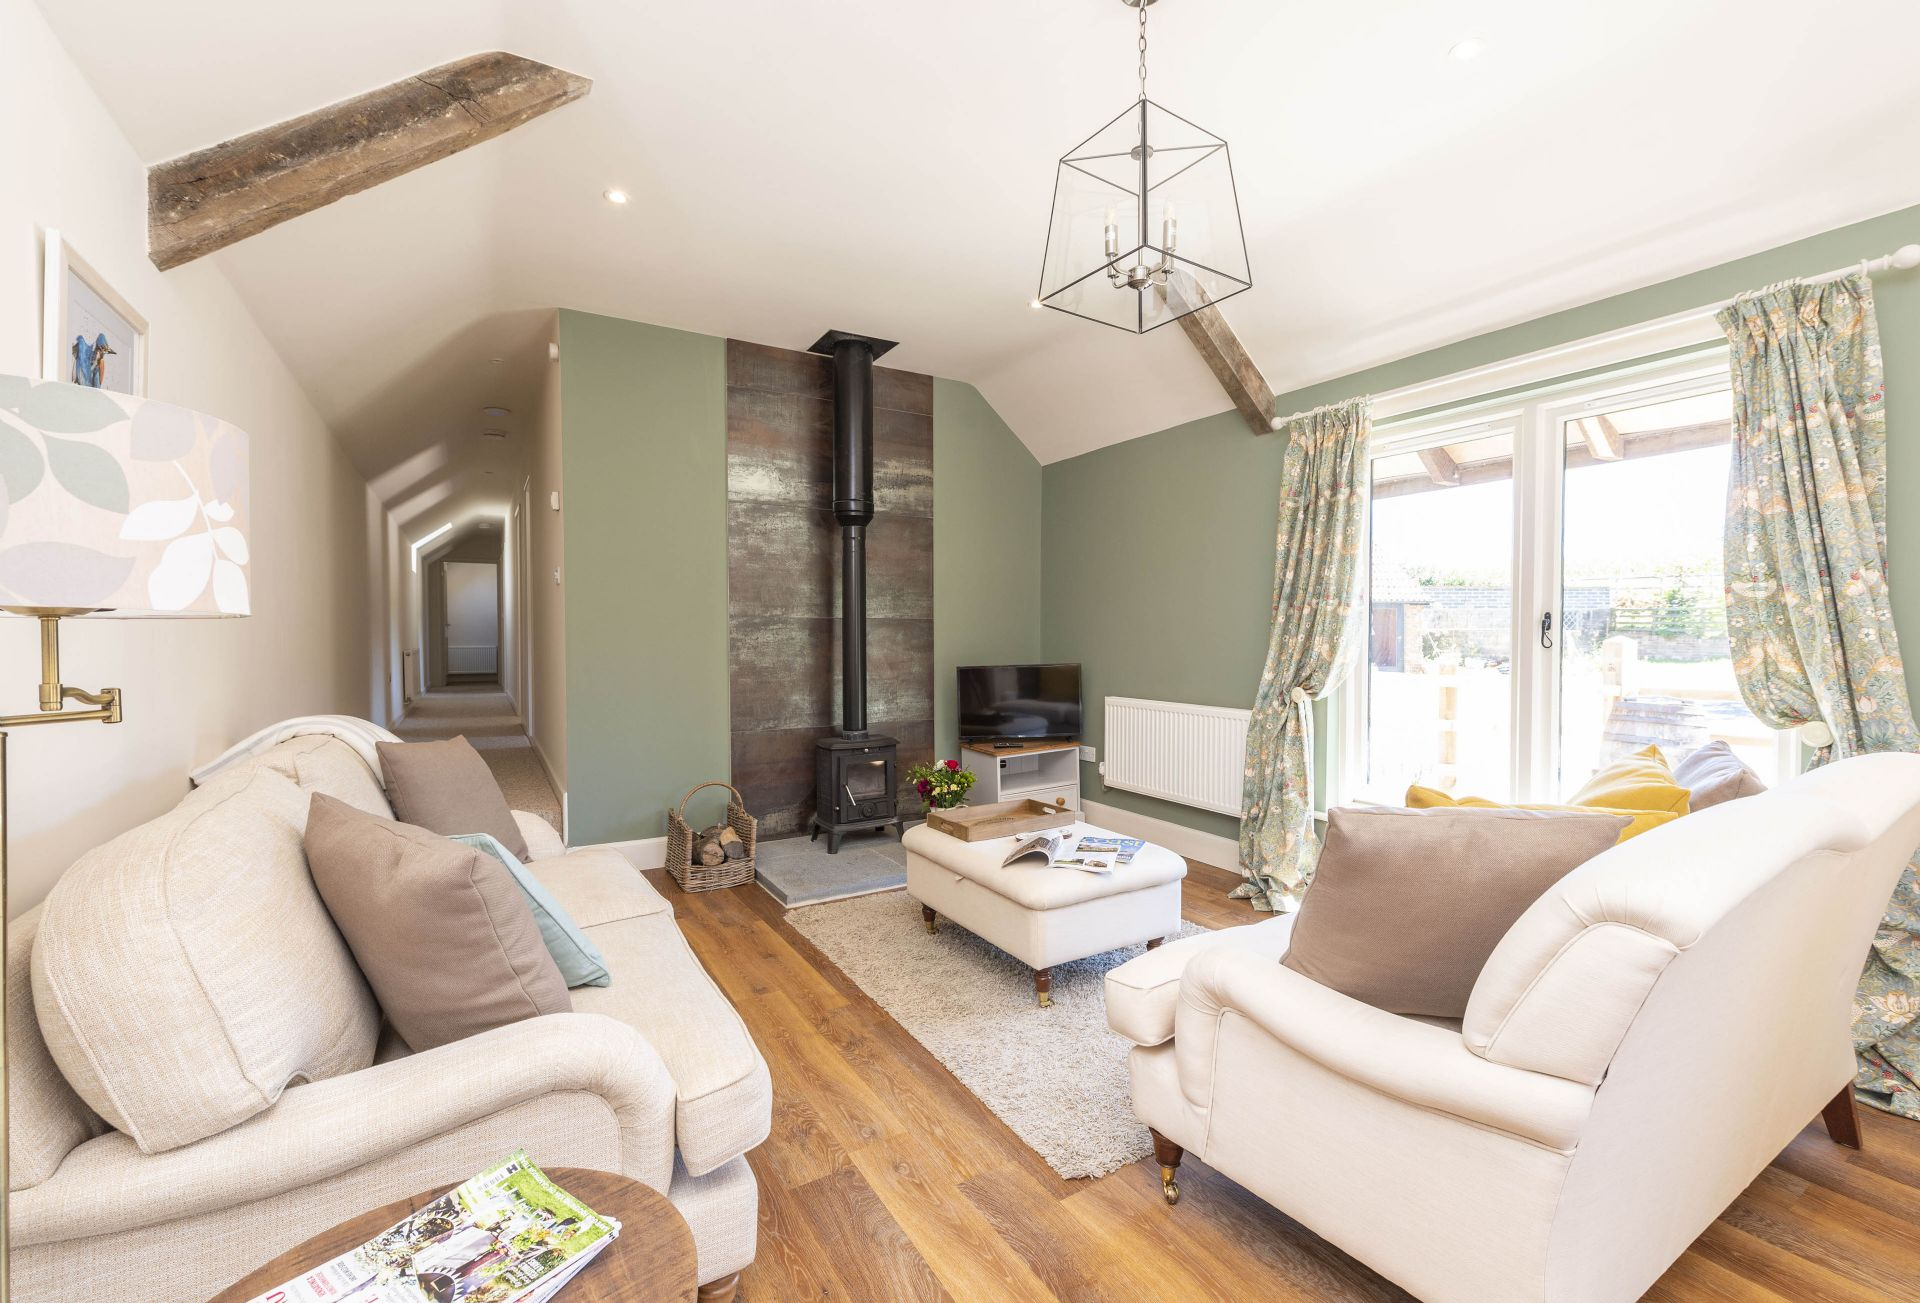 Park Farm Byre is located in Dorchester and surrounding villages